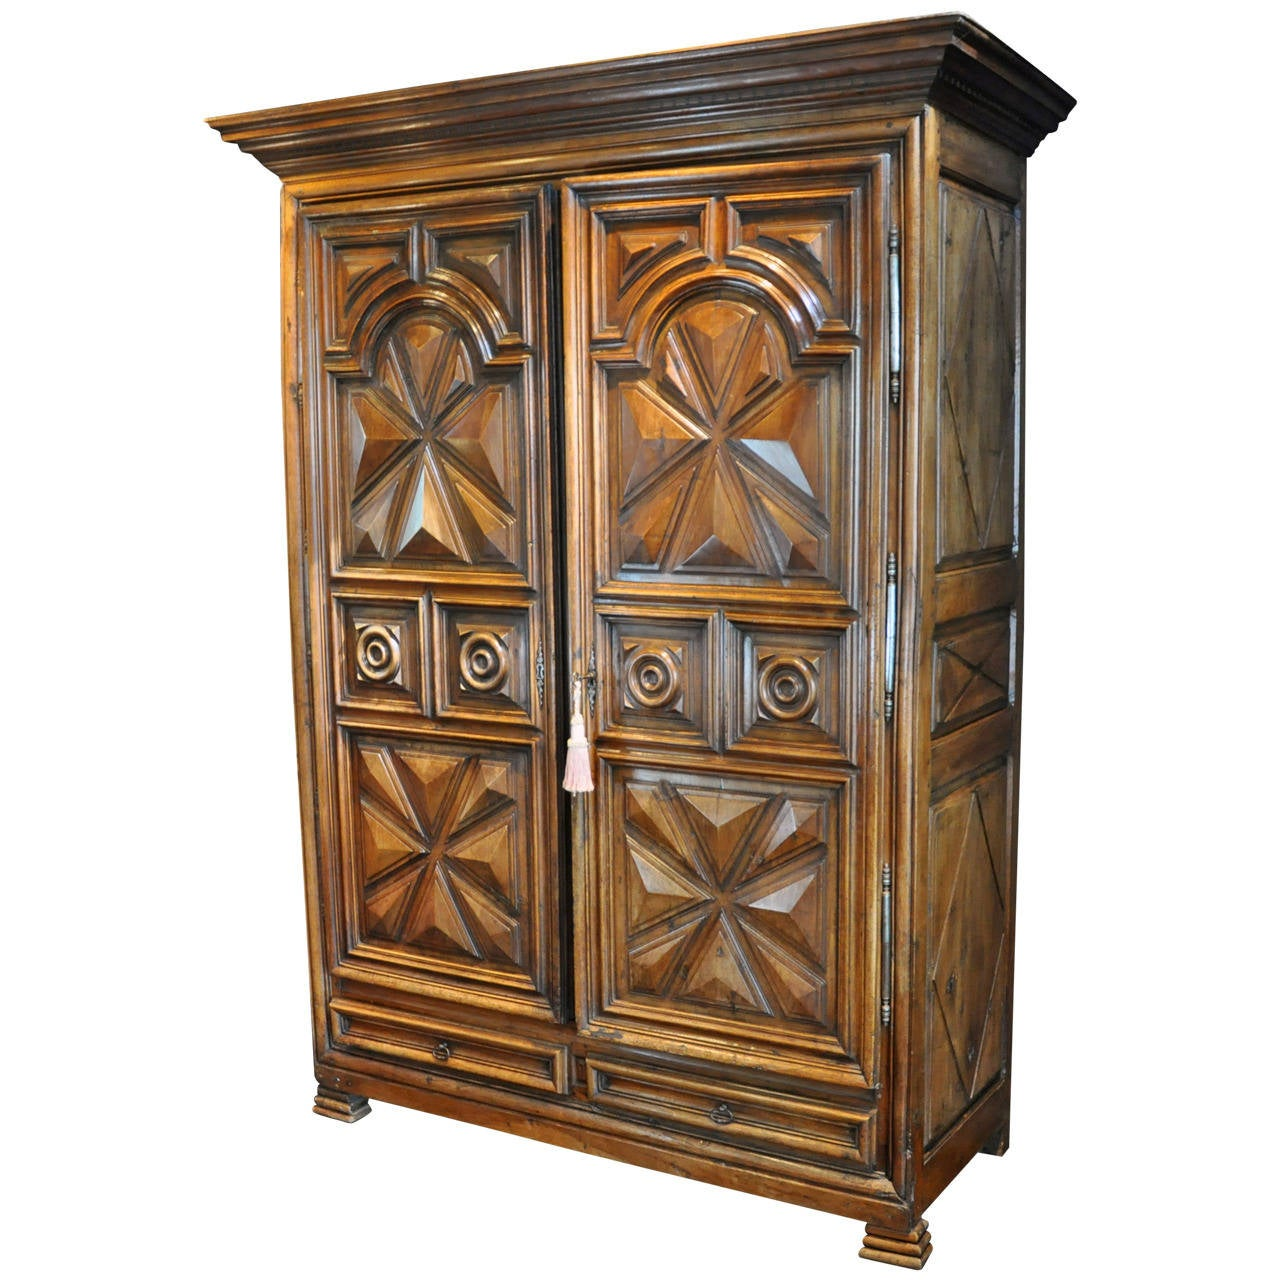 magnificent louis xiii style walnut armoire at 1stdibs. Black Bedroom Furniture Sets. Home Design Ideas